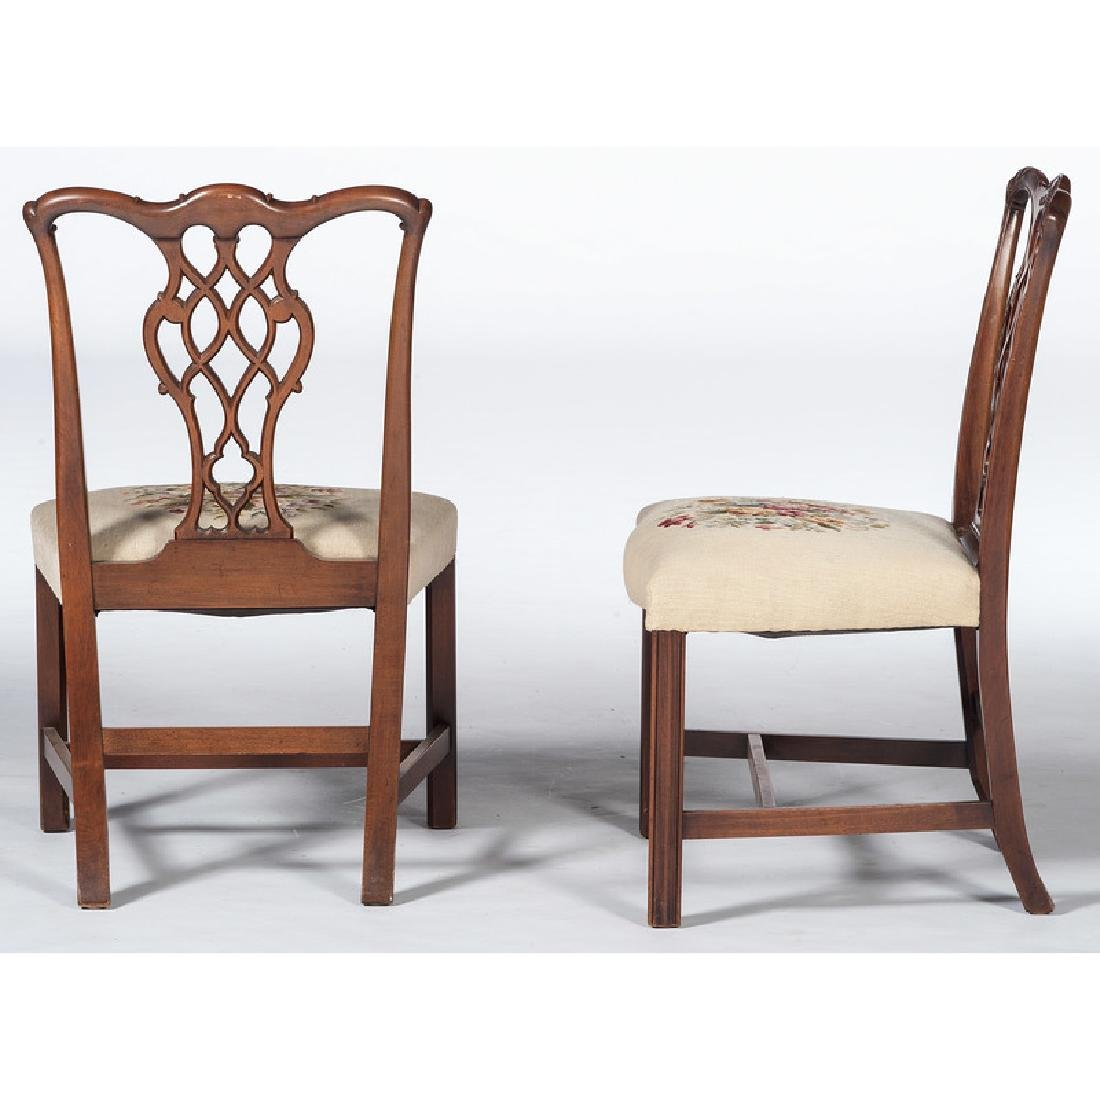 Chippendale-style Dining Chairs - 3